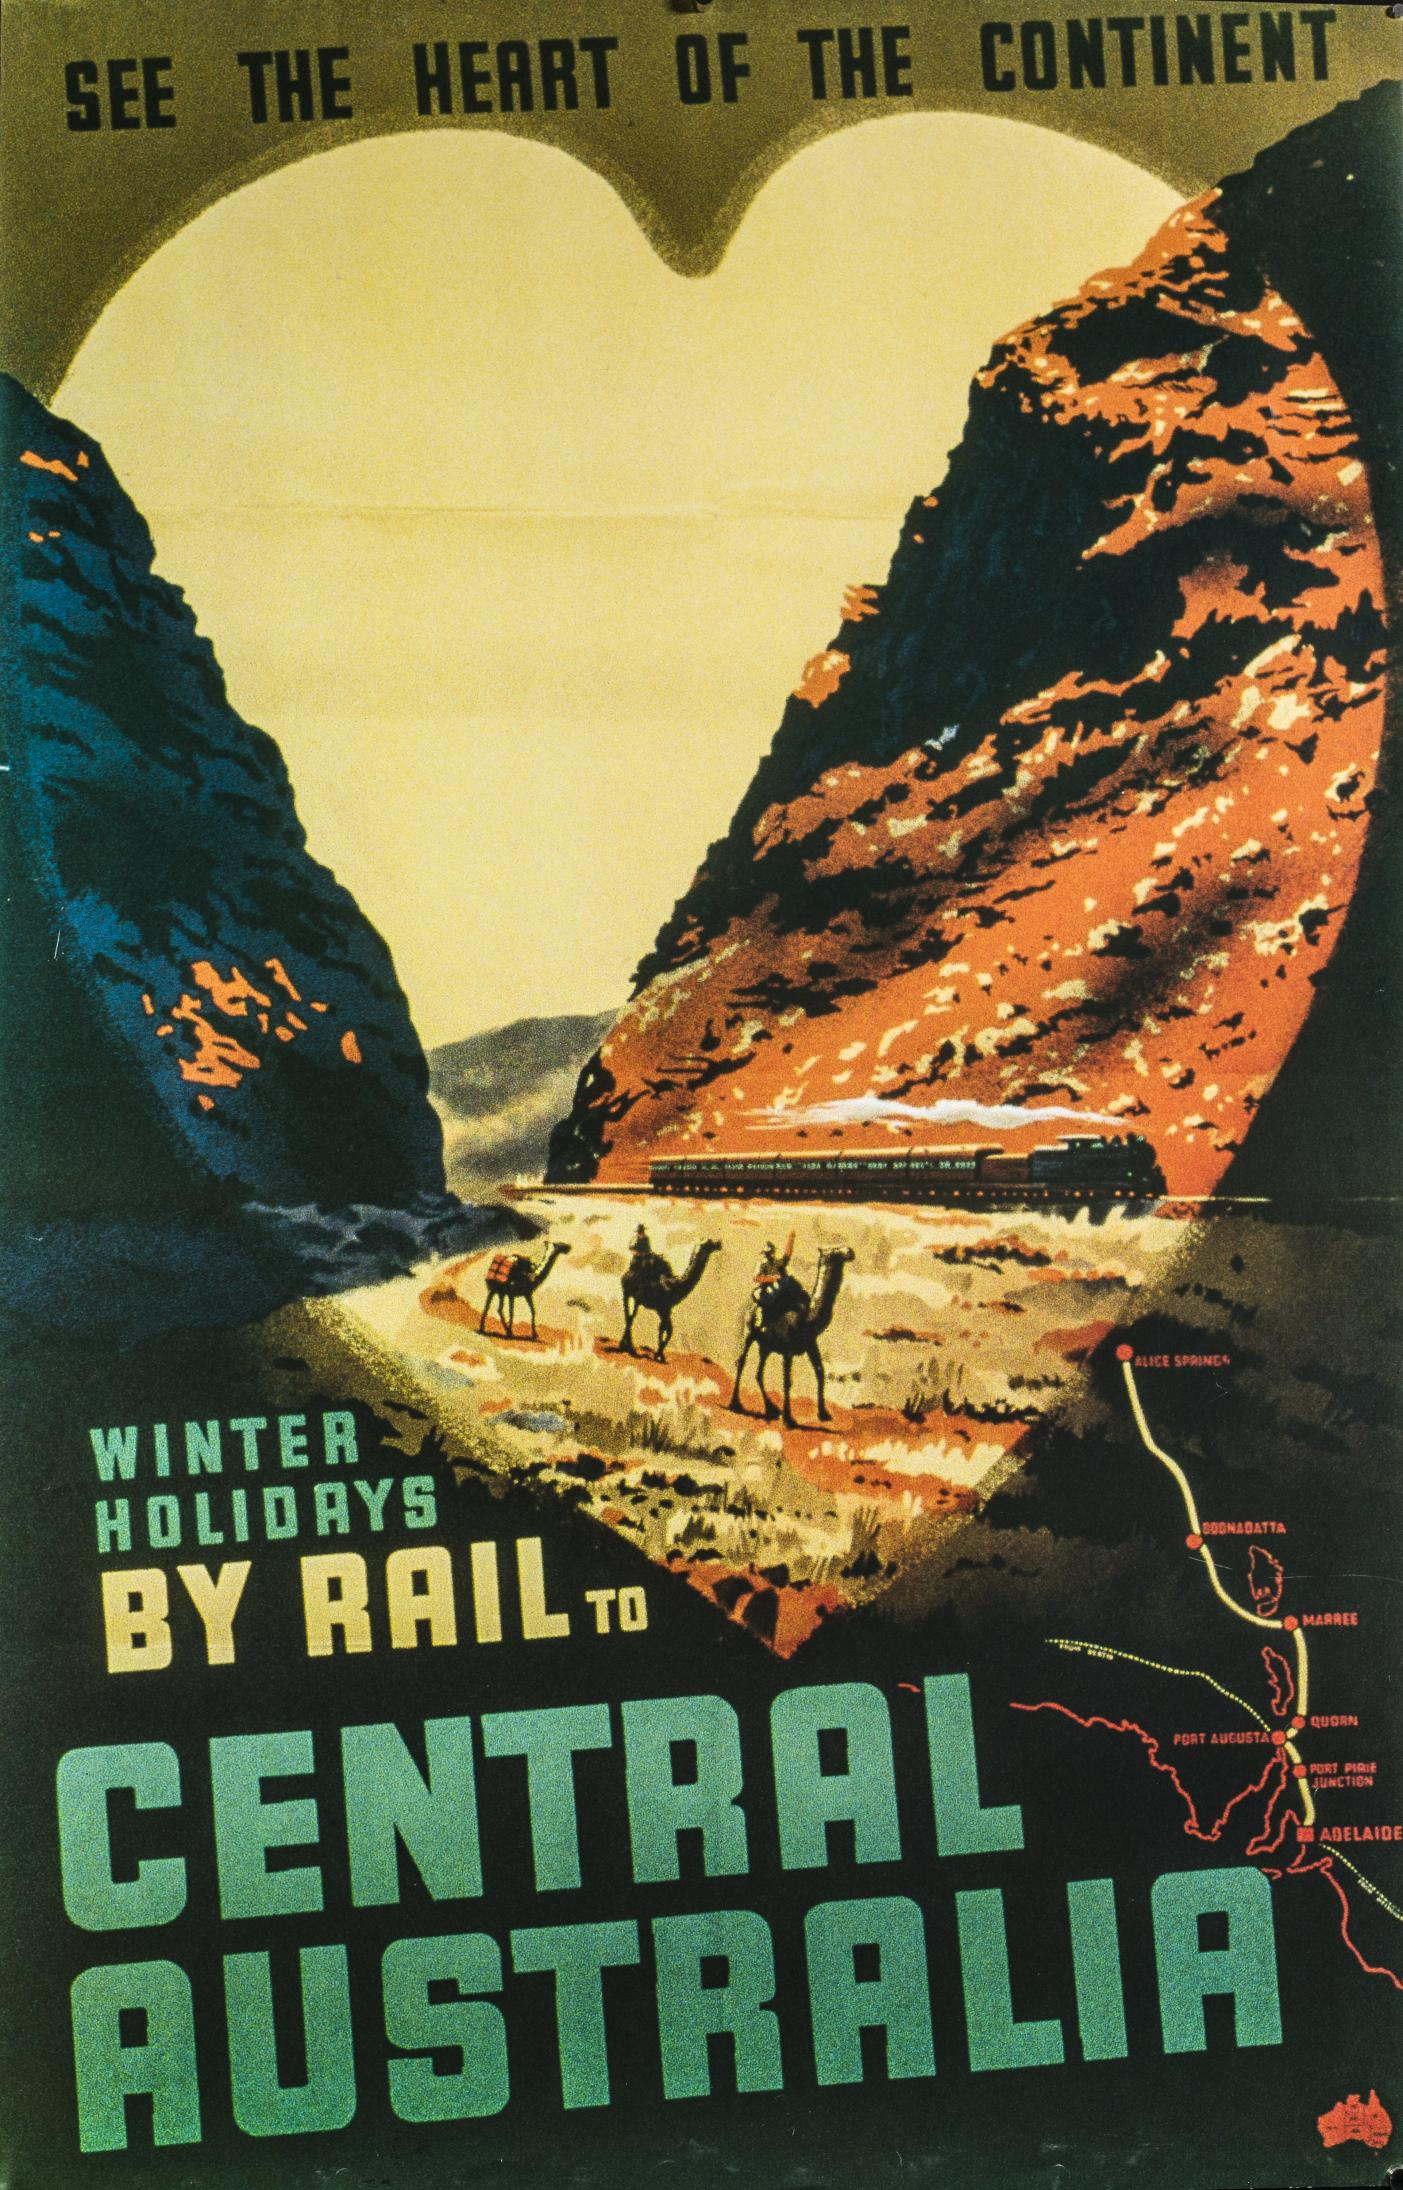 Tourism poster from 1959 promoting travel in Central Australian. Camels in the foreground and a train in the background.